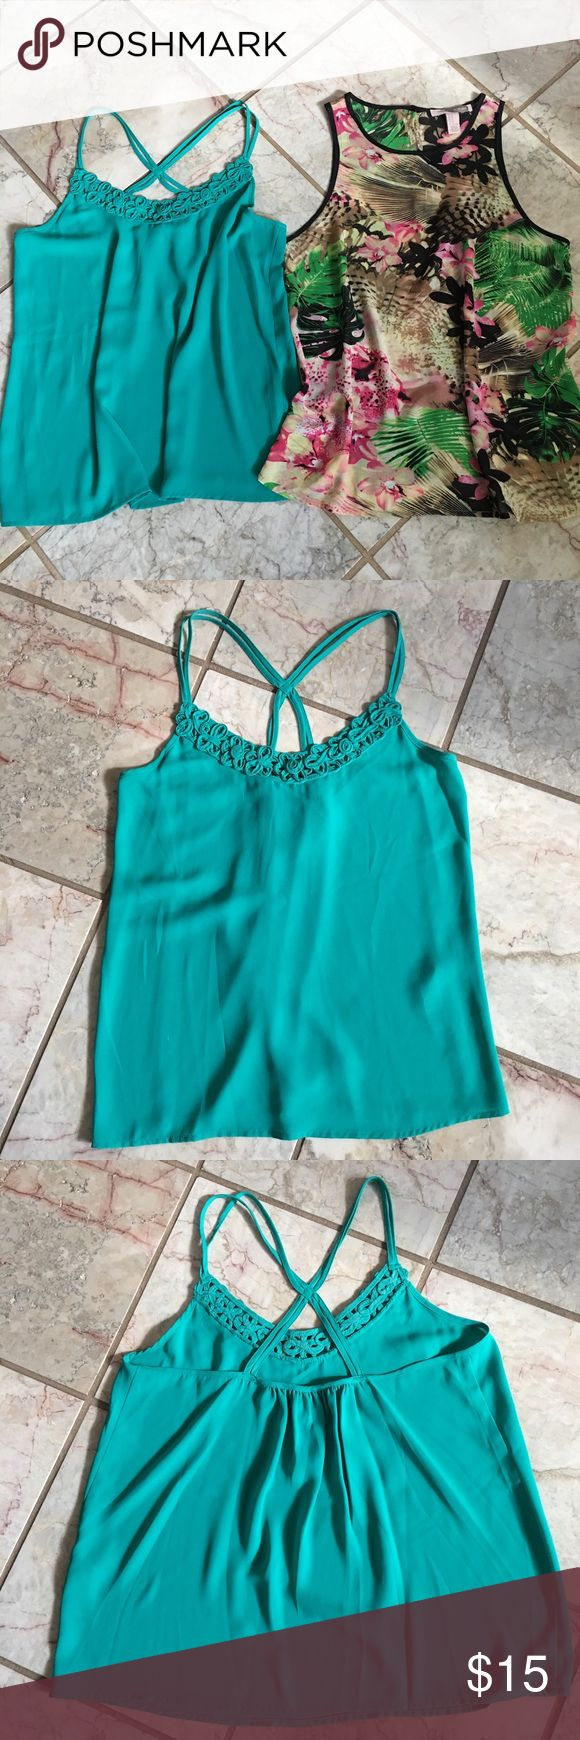 Forever 21 Tropical & Teal Tank Top Bundle Super cute Forever 21 tank top set, first is a Teal with double straps, has front detailing, color is a little darker then in person, second is the Hawaiian Tropical print, it's a little sheer, has kinda a leopard cheetah background print, pretty colors, also has a upper back cut out circle. Both are size medium. See all pictures Forever 21 Tops Tank Tops